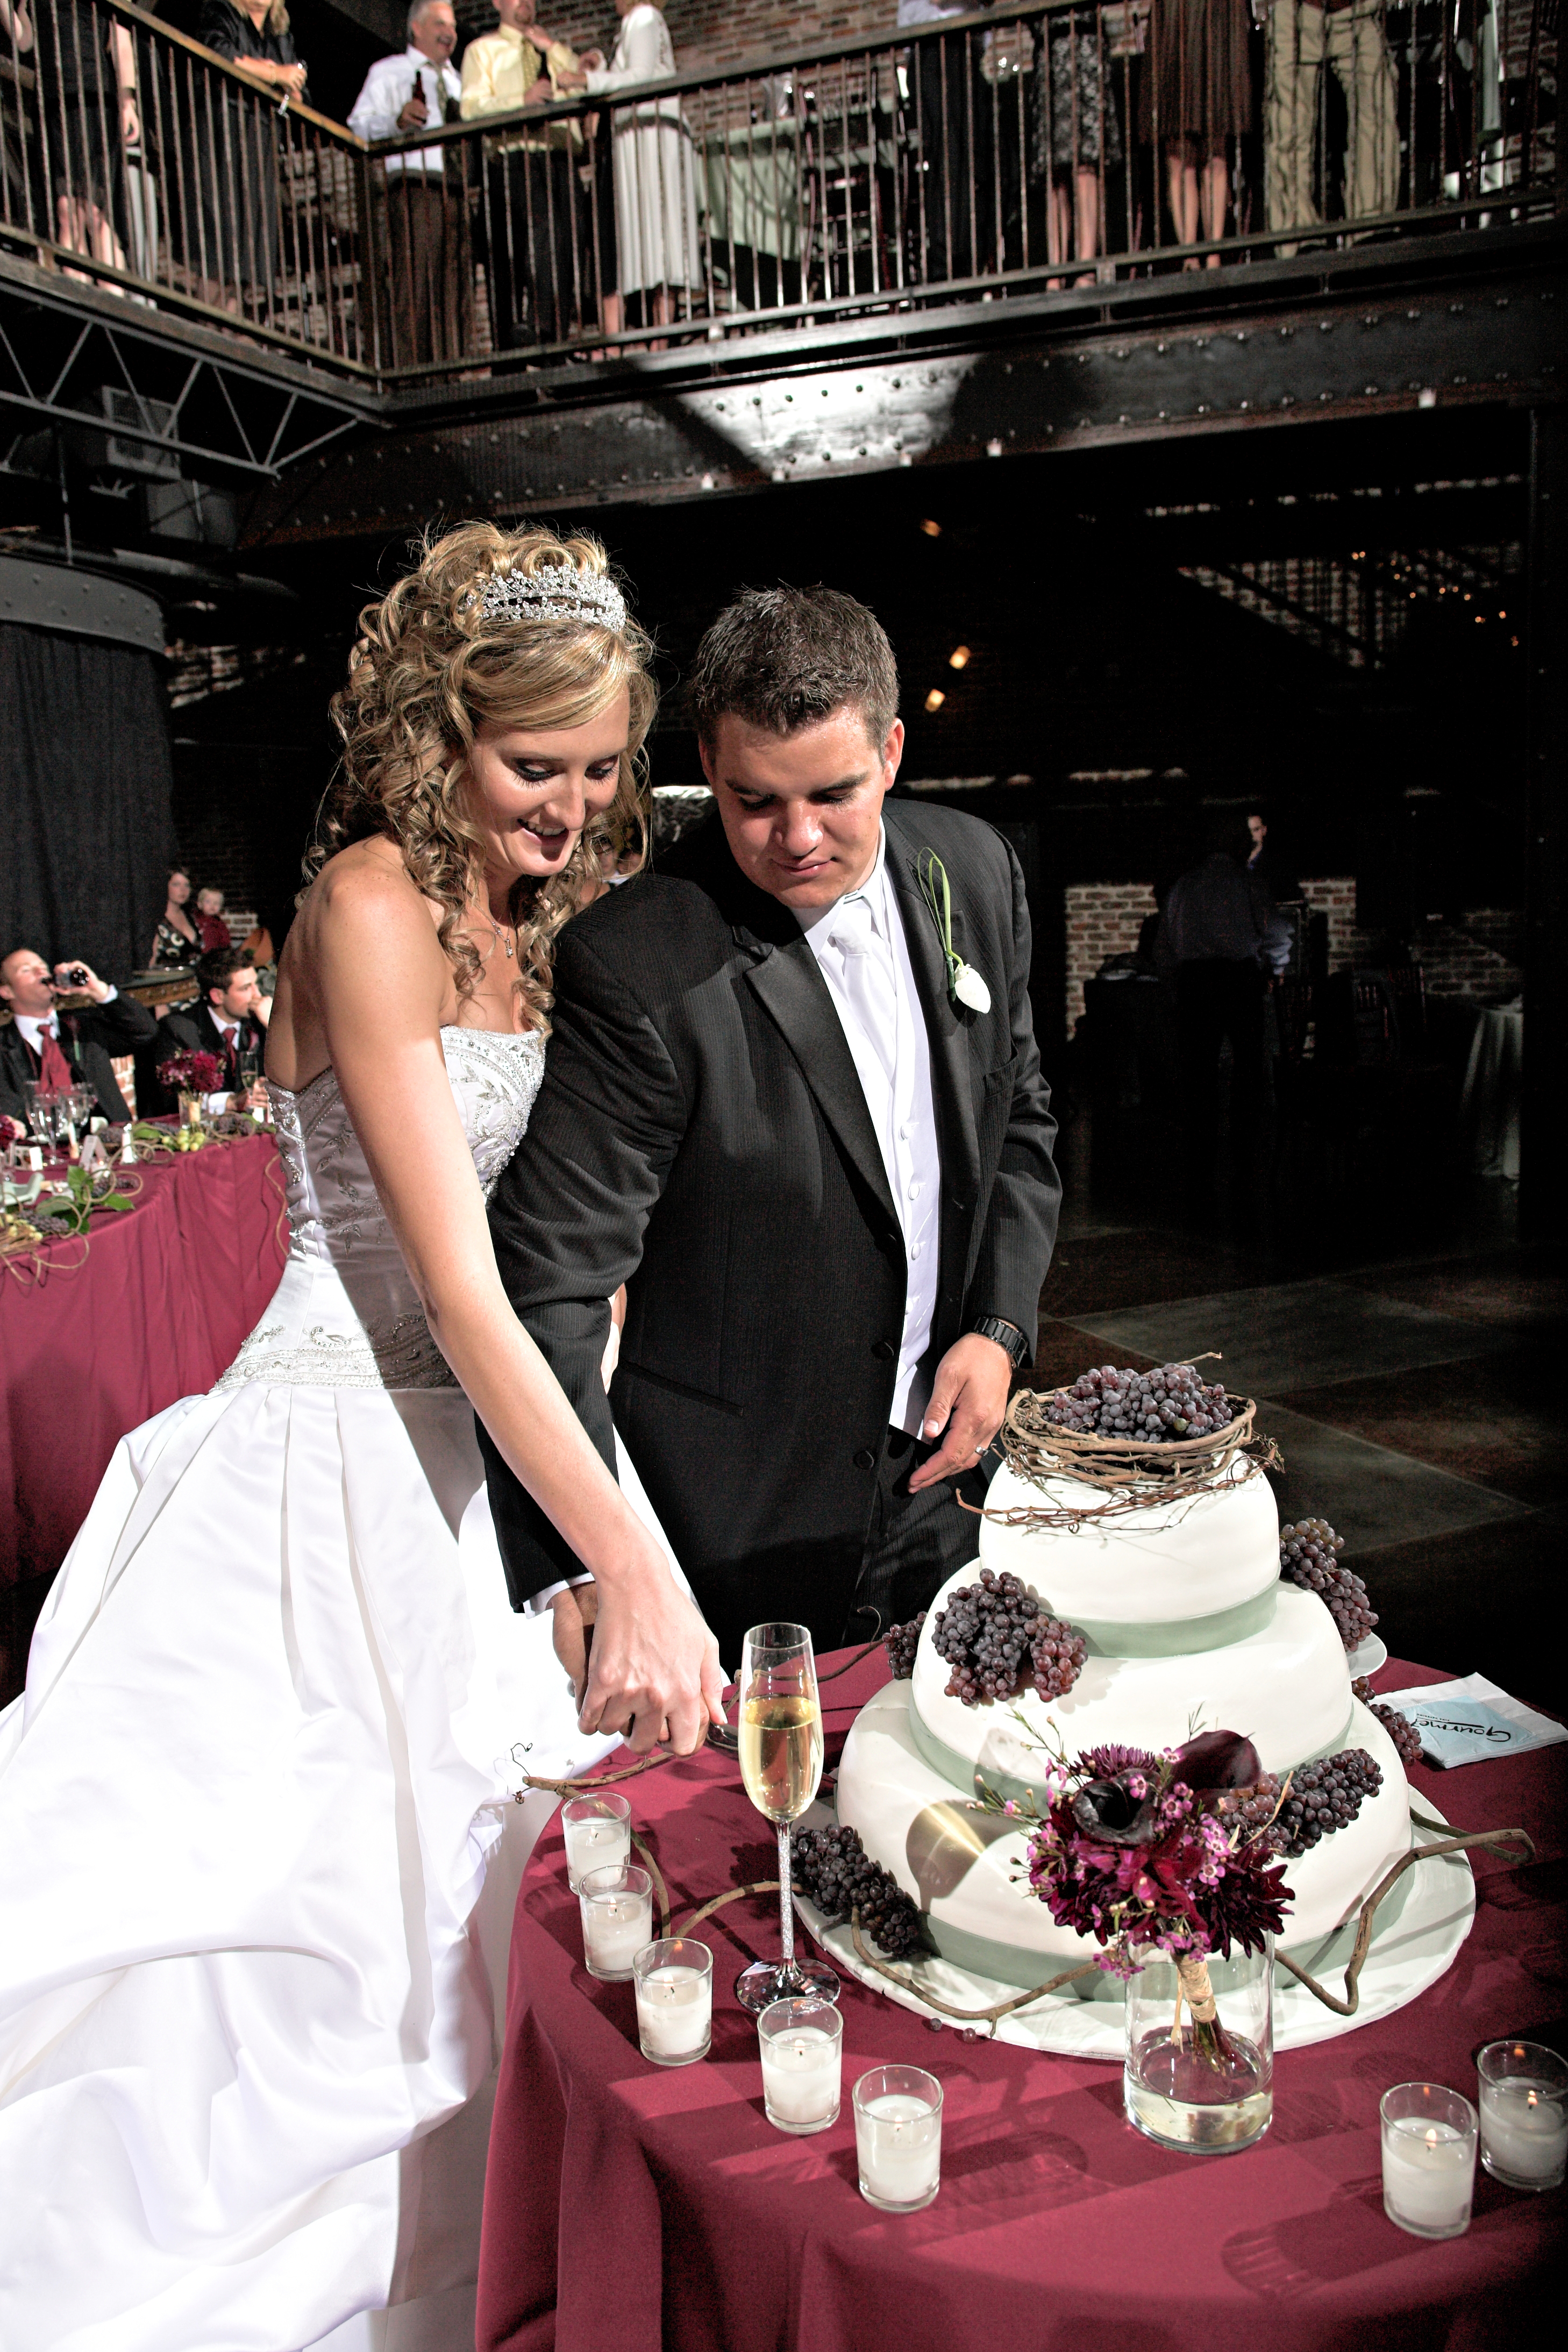 Cakes, cake, Cutting, Theme, Weddings, Tuscan, etc llc